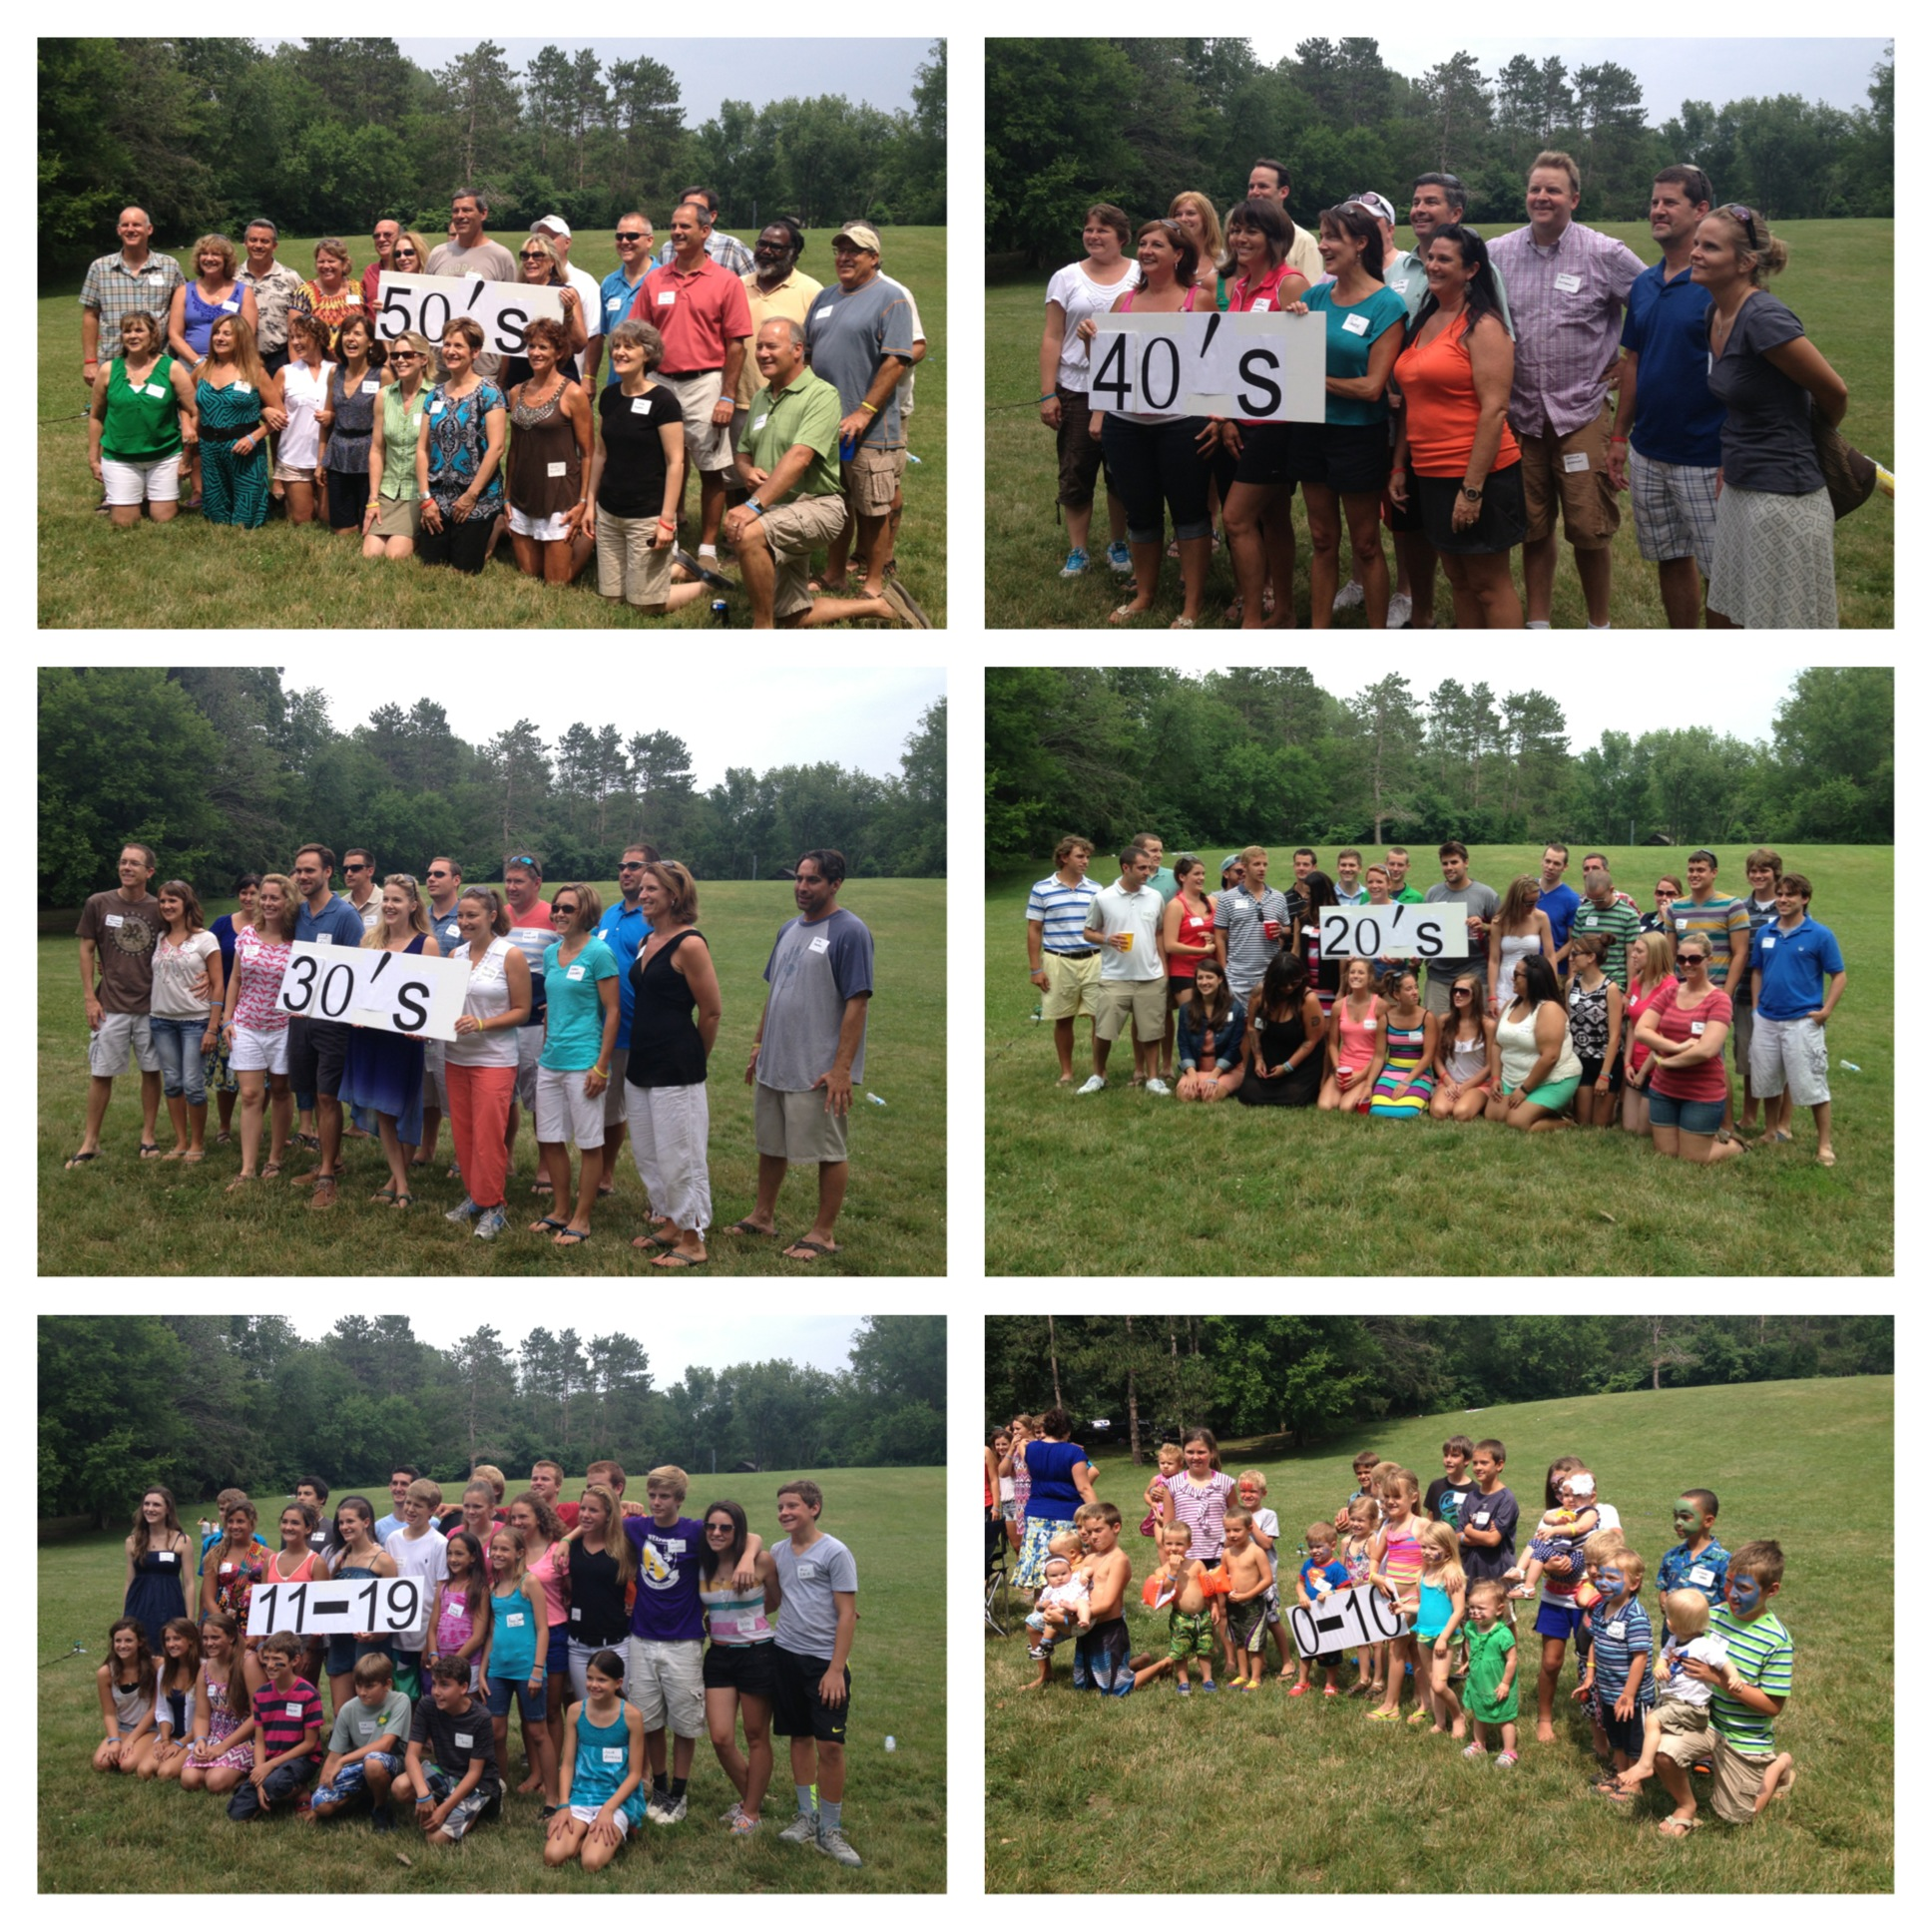 Picture collage of the age groups at my family reunion this summer. So fun to see so many relatives together at the lake!